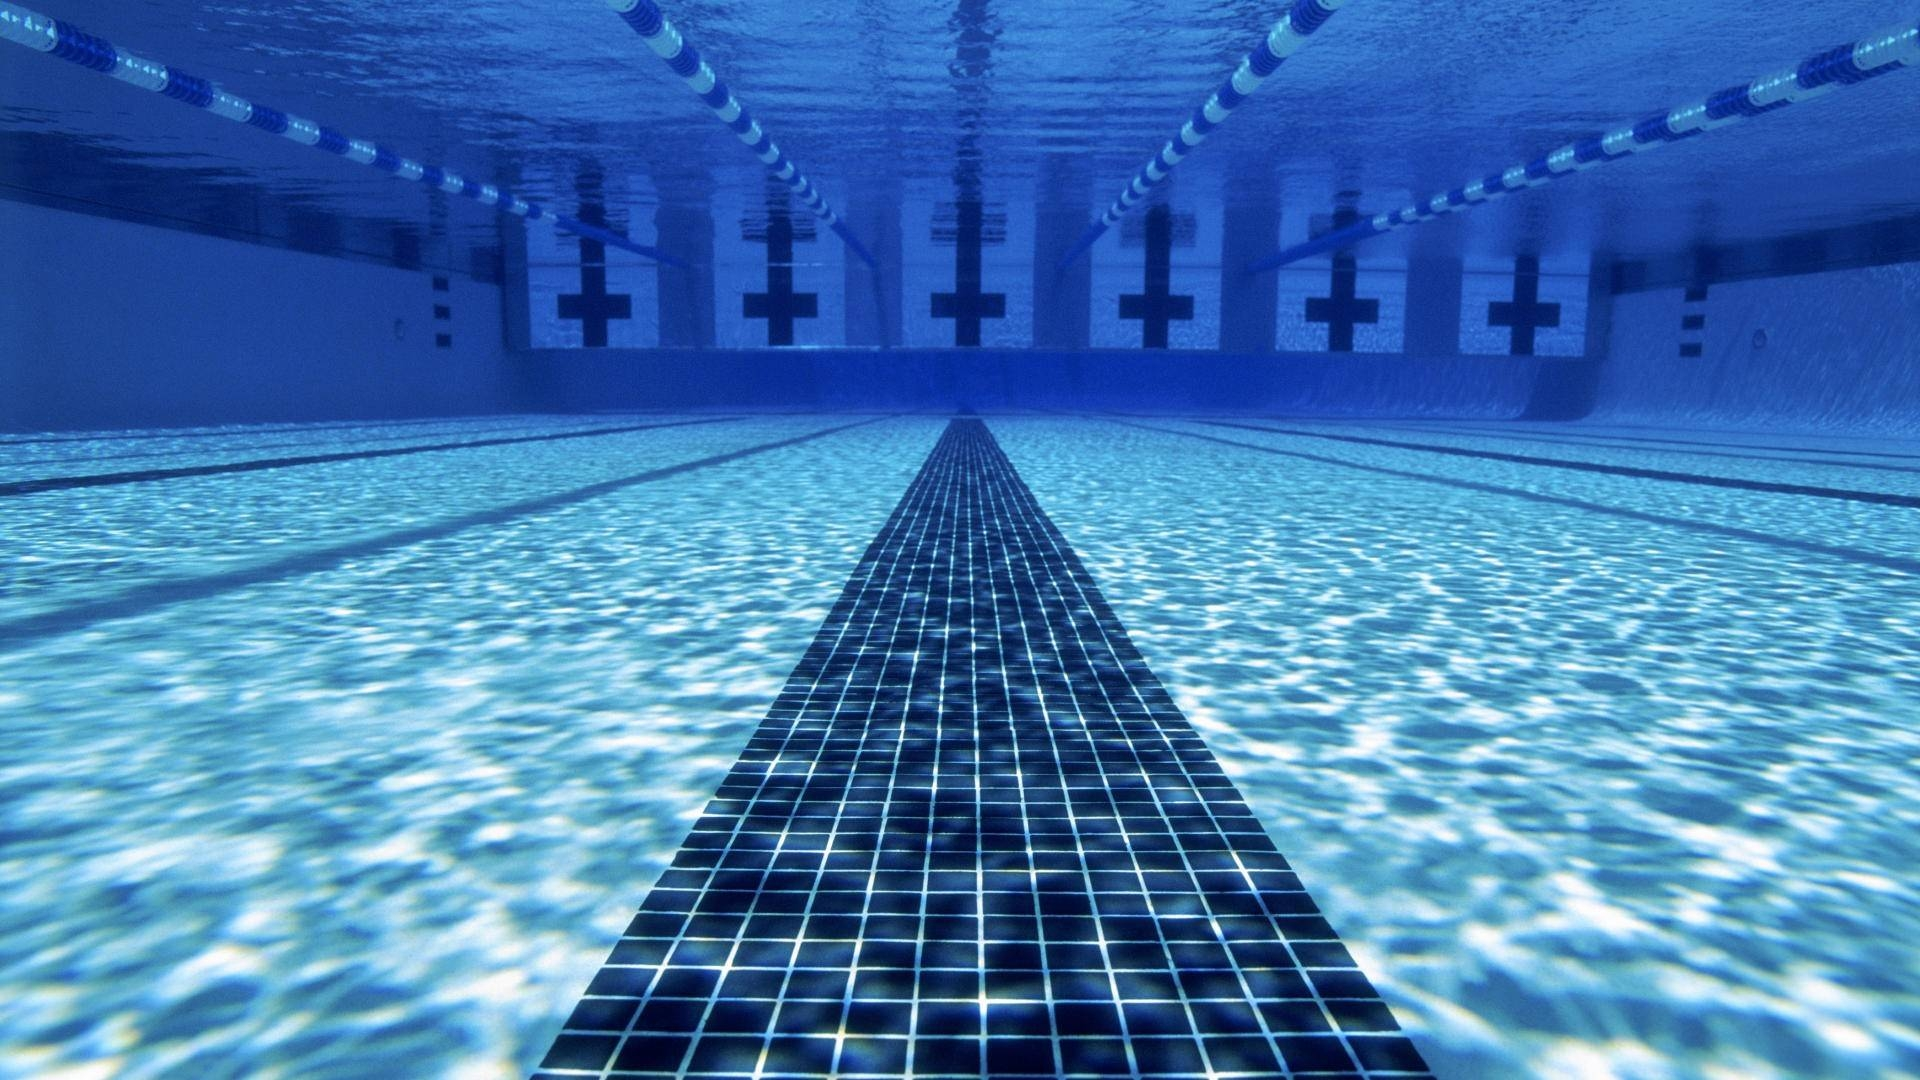 Hd Wallpapers For Pc 1080p Free Download Pack Swimming Wallpapers High Quality Download Free